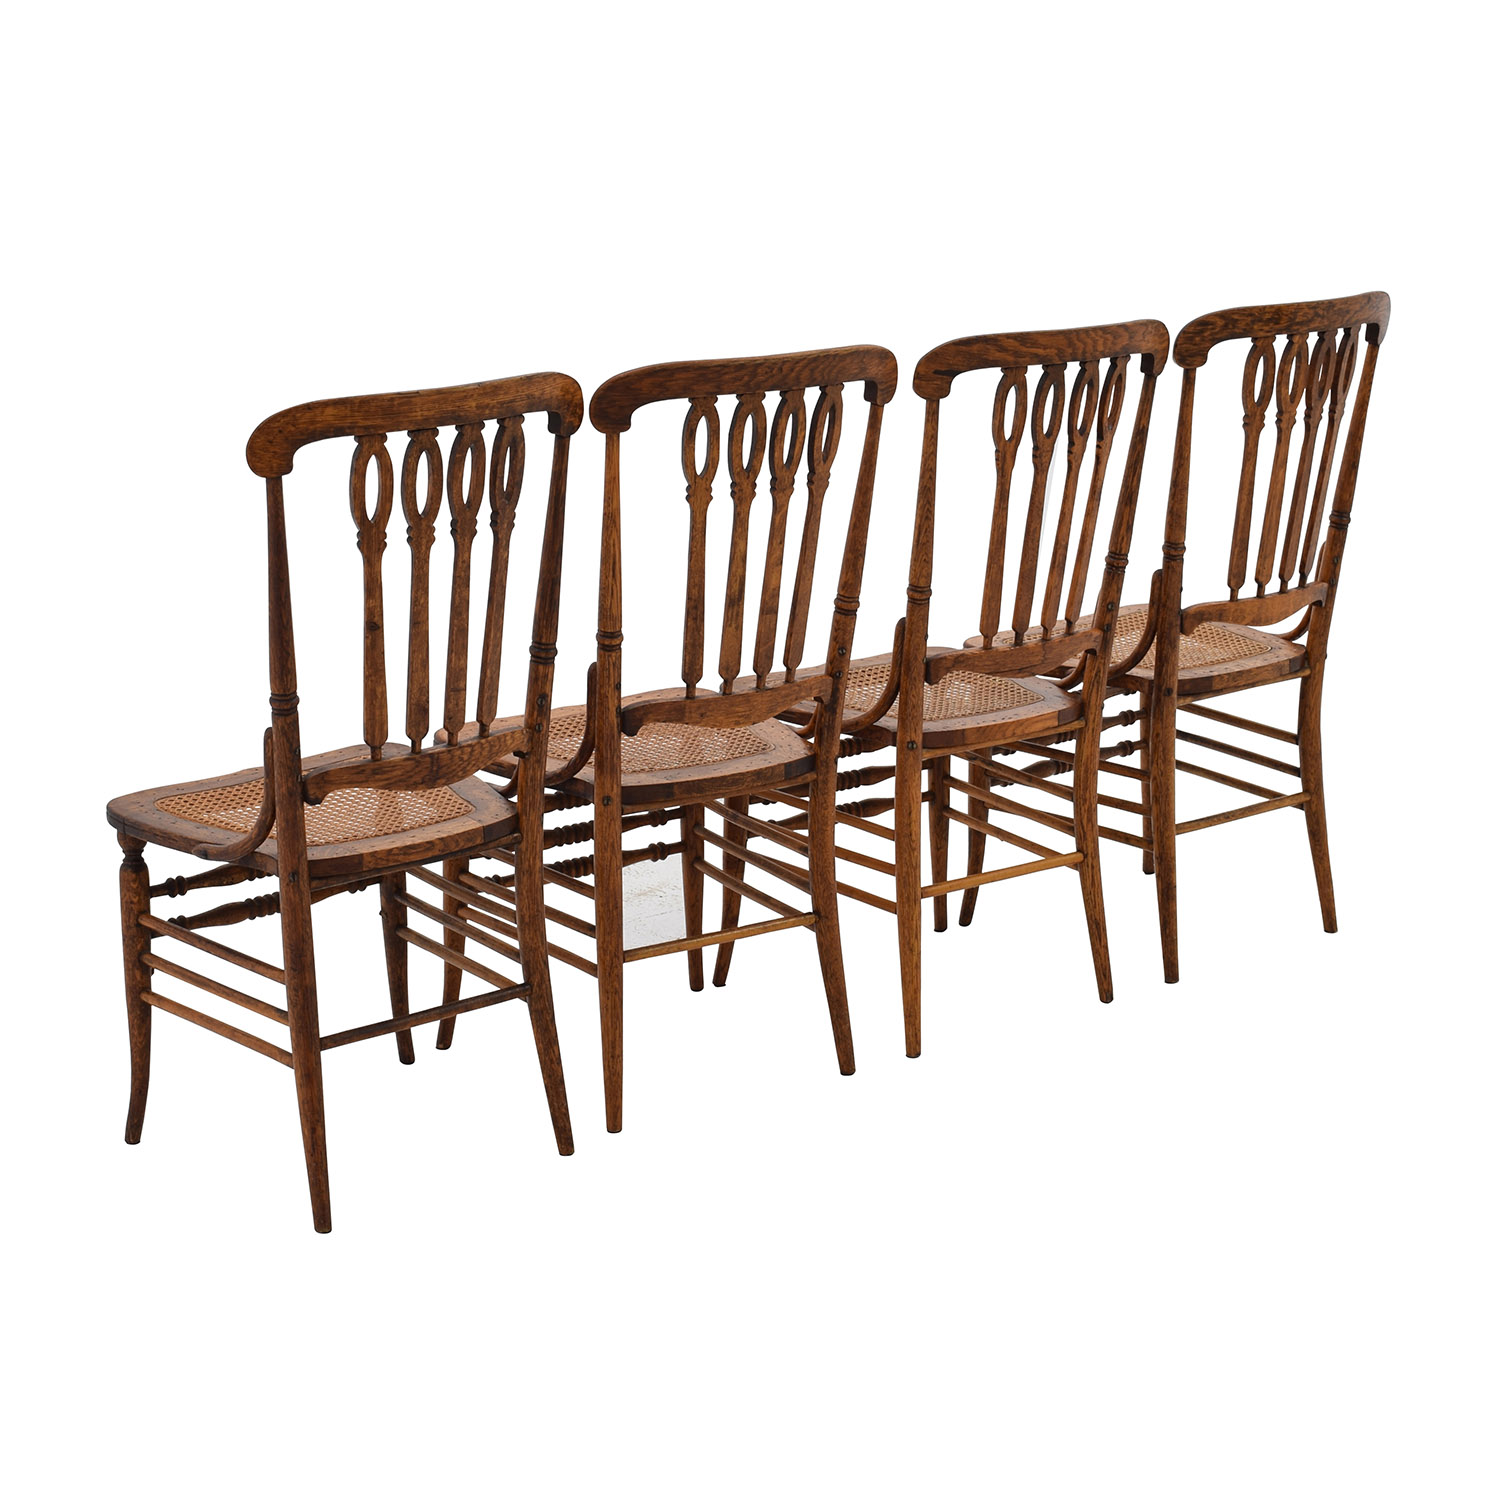 52 Off Antique Cane Weaved Wood Dining Chairs Chairs